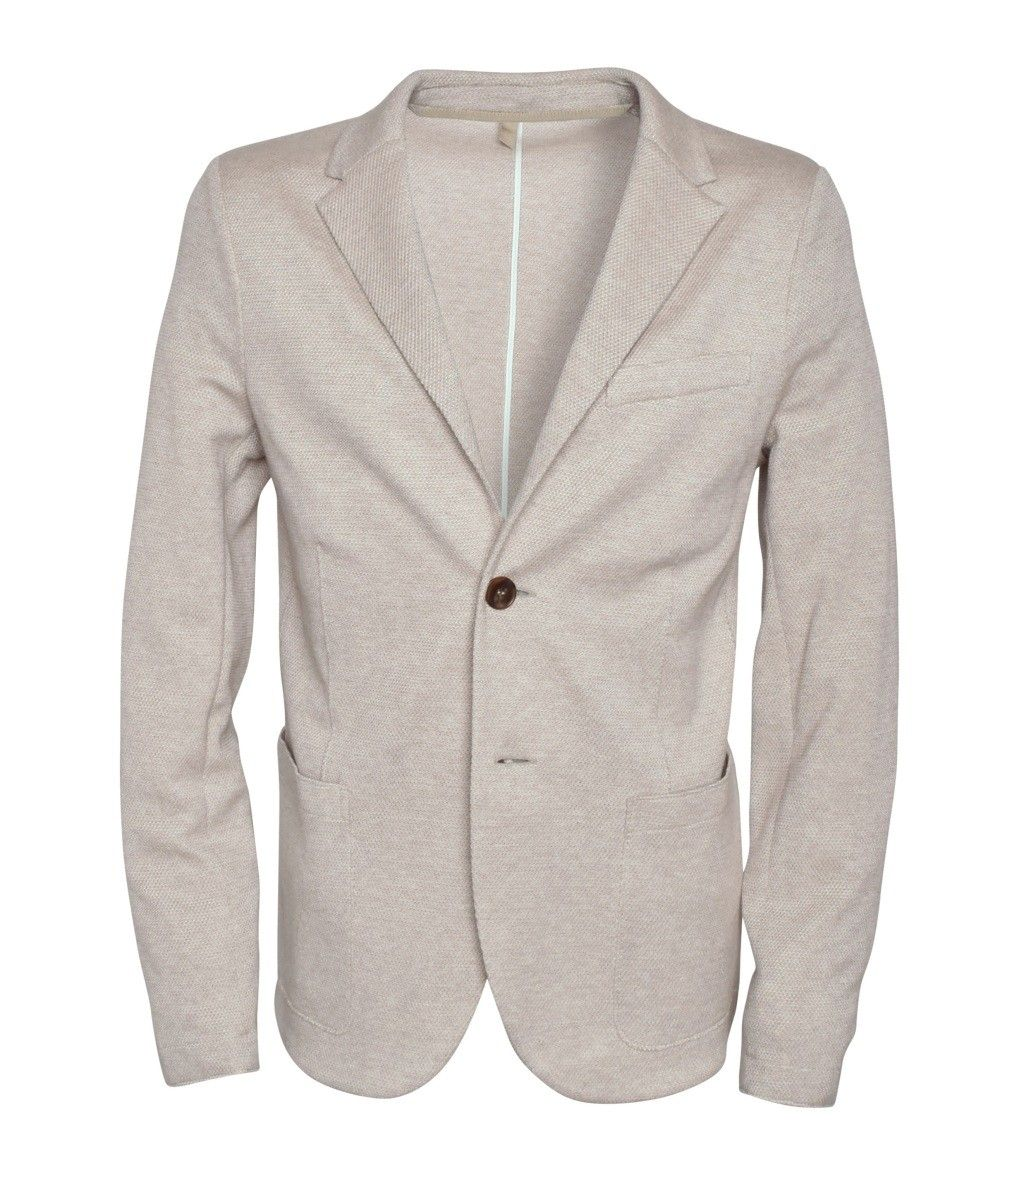 HARRIS WHARF LONDON - Herren Blazer - Men 2B. Satorial Blazer - Ecru